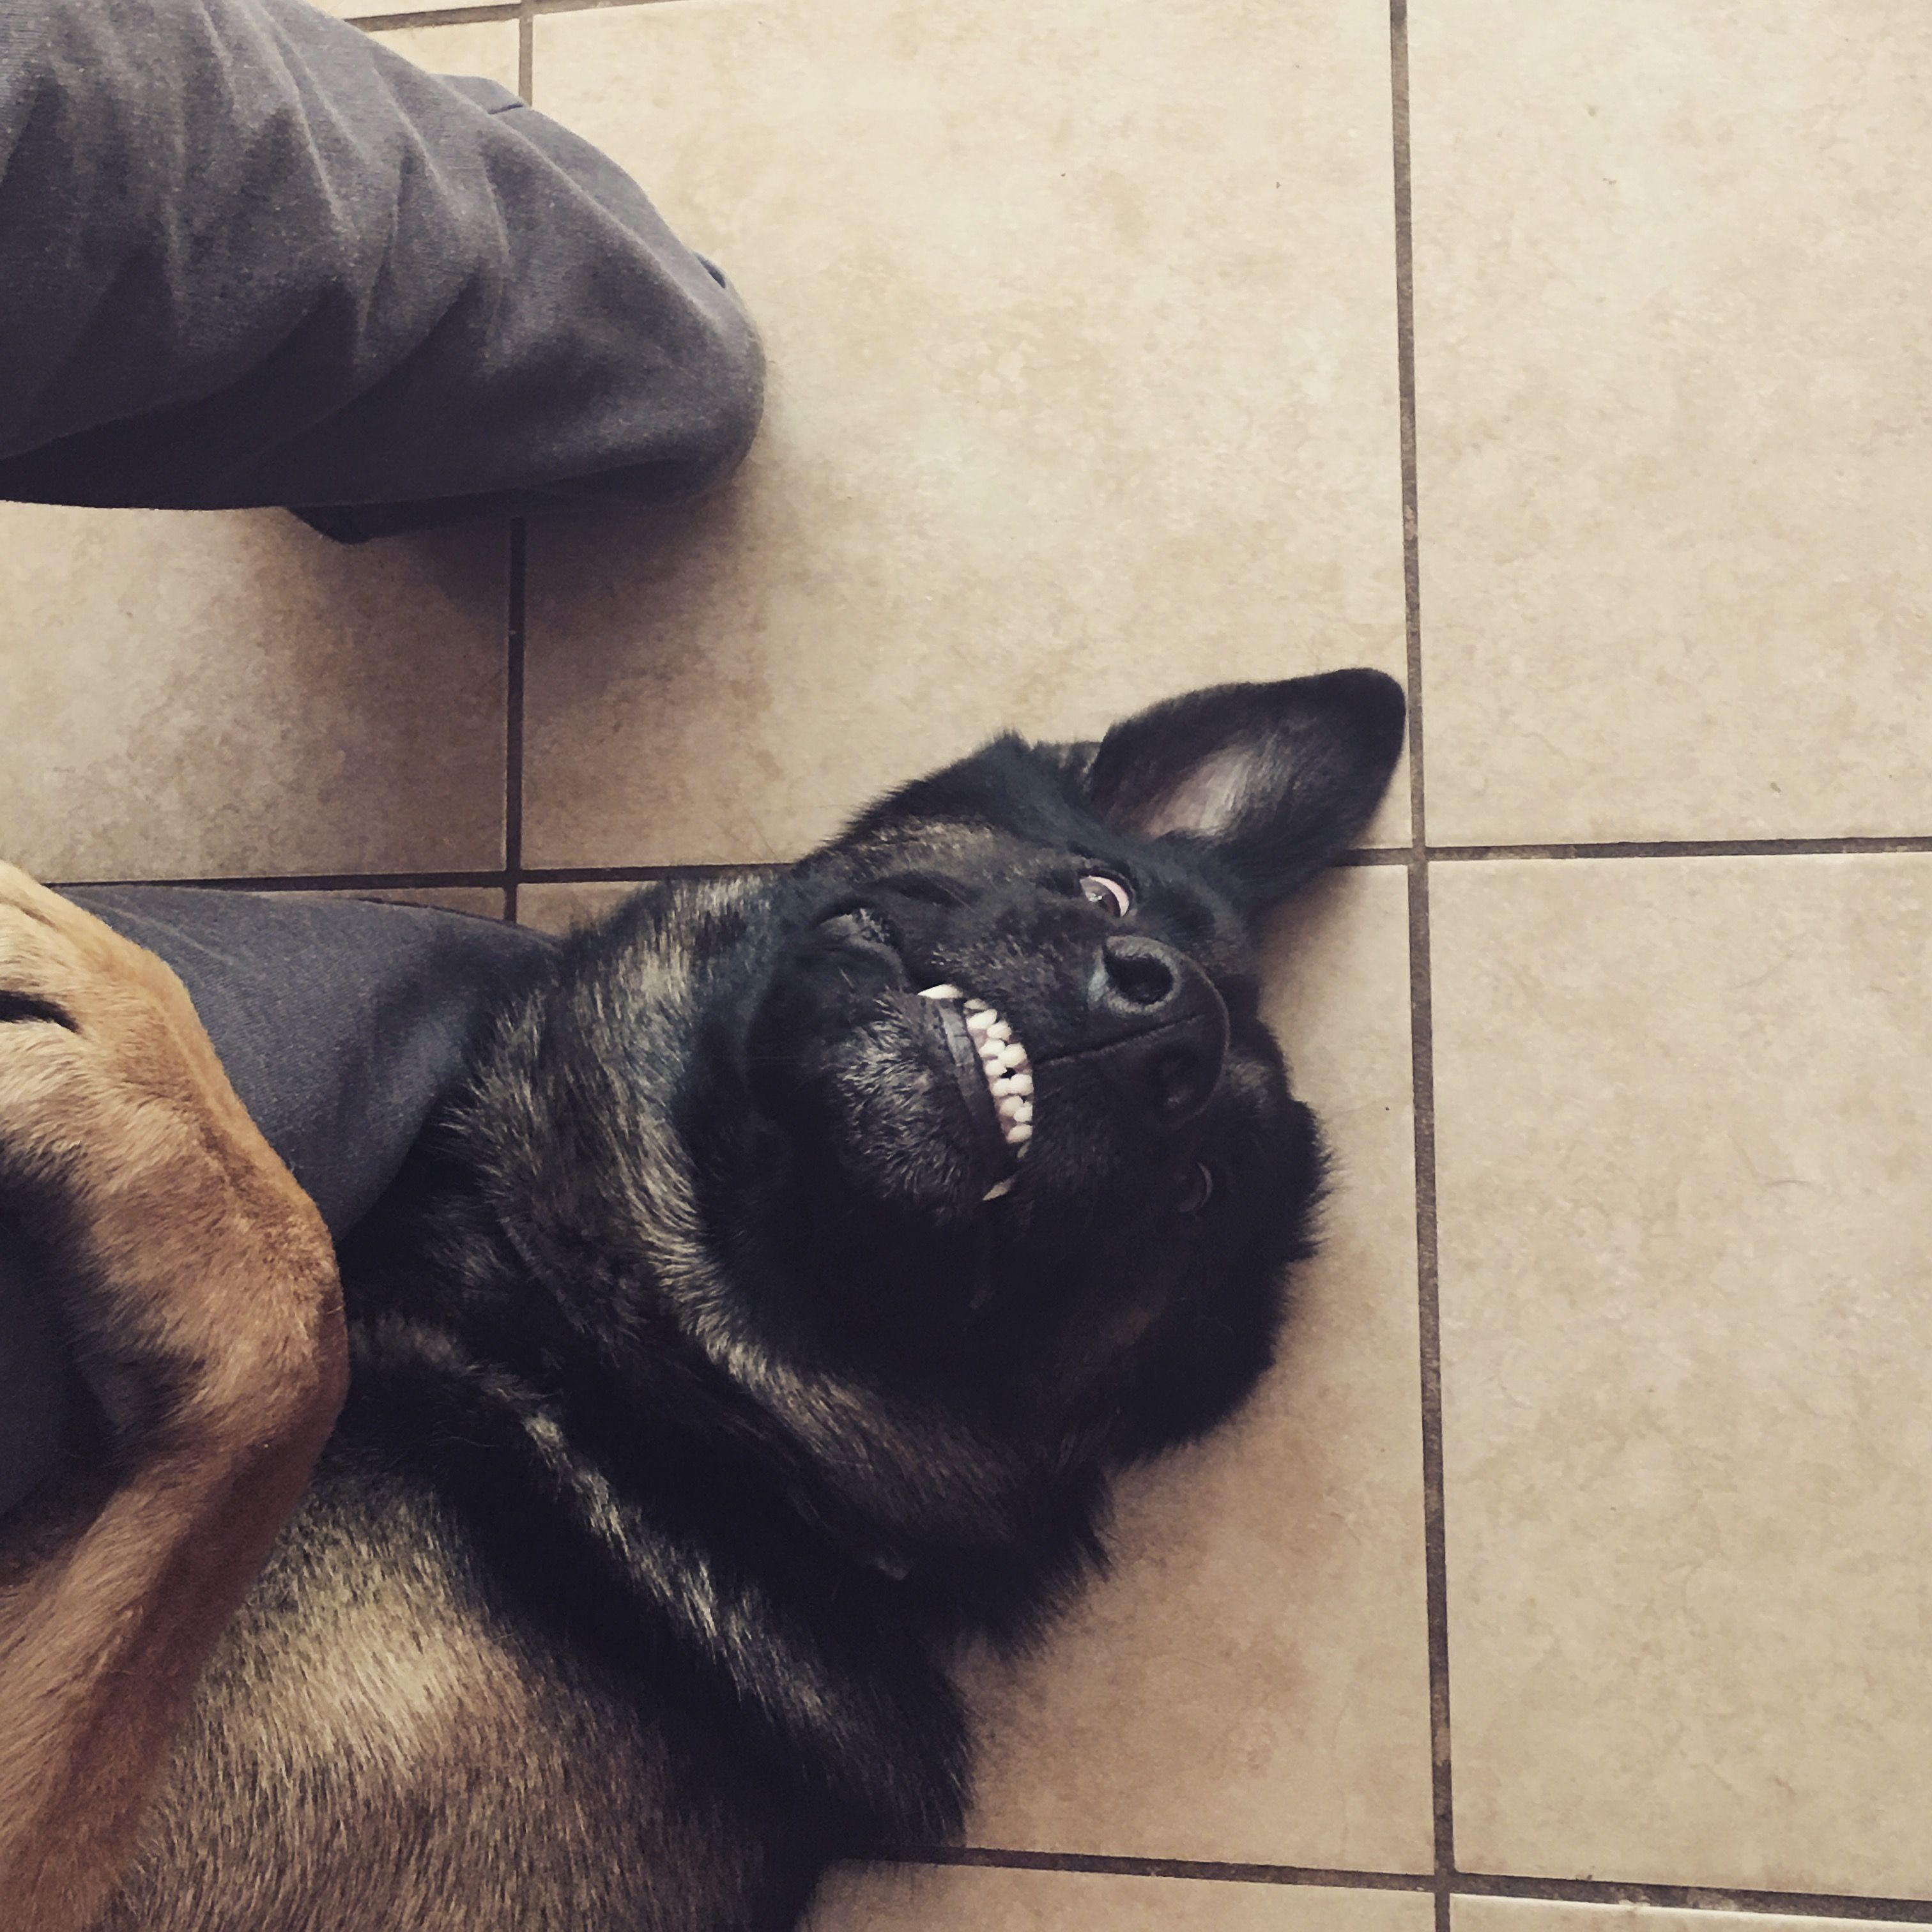 Atlas The German Shepherd Waiting For Food To Fall From